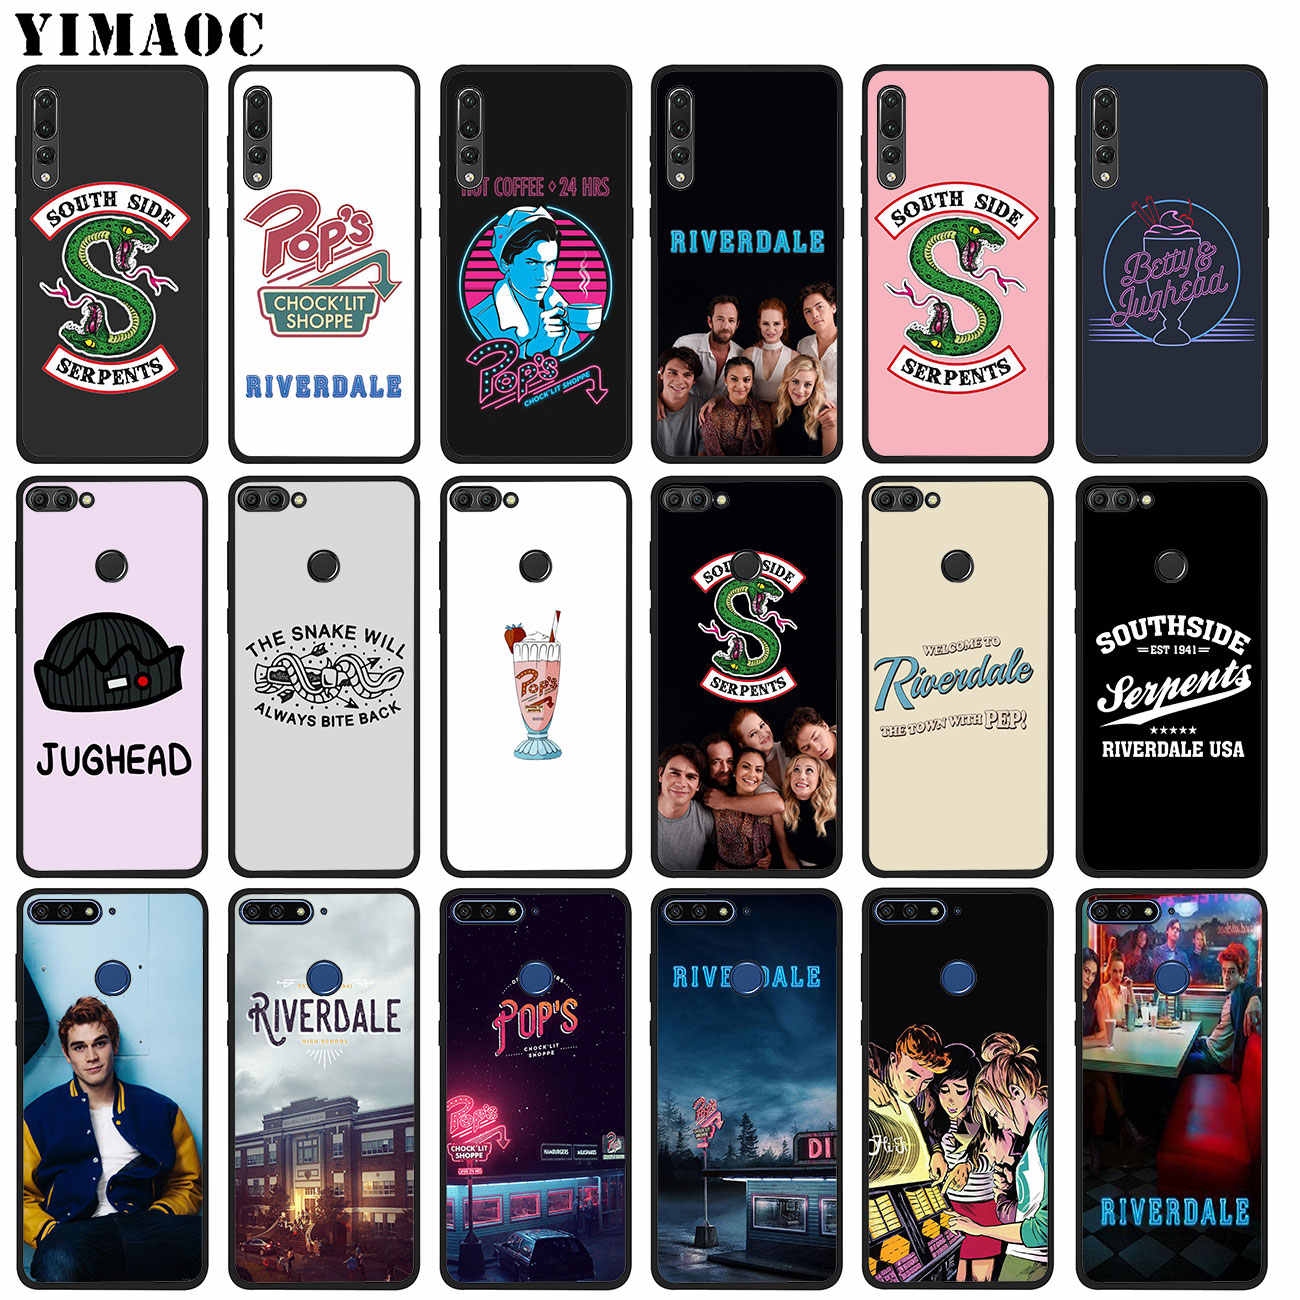 YIMAOC Riverdale South Side Serpents Soft Silicone Phone Case for Huawei P20 Pro P10 P9 P8 Lite Mini 2017 P Smart Z 2019 Cover